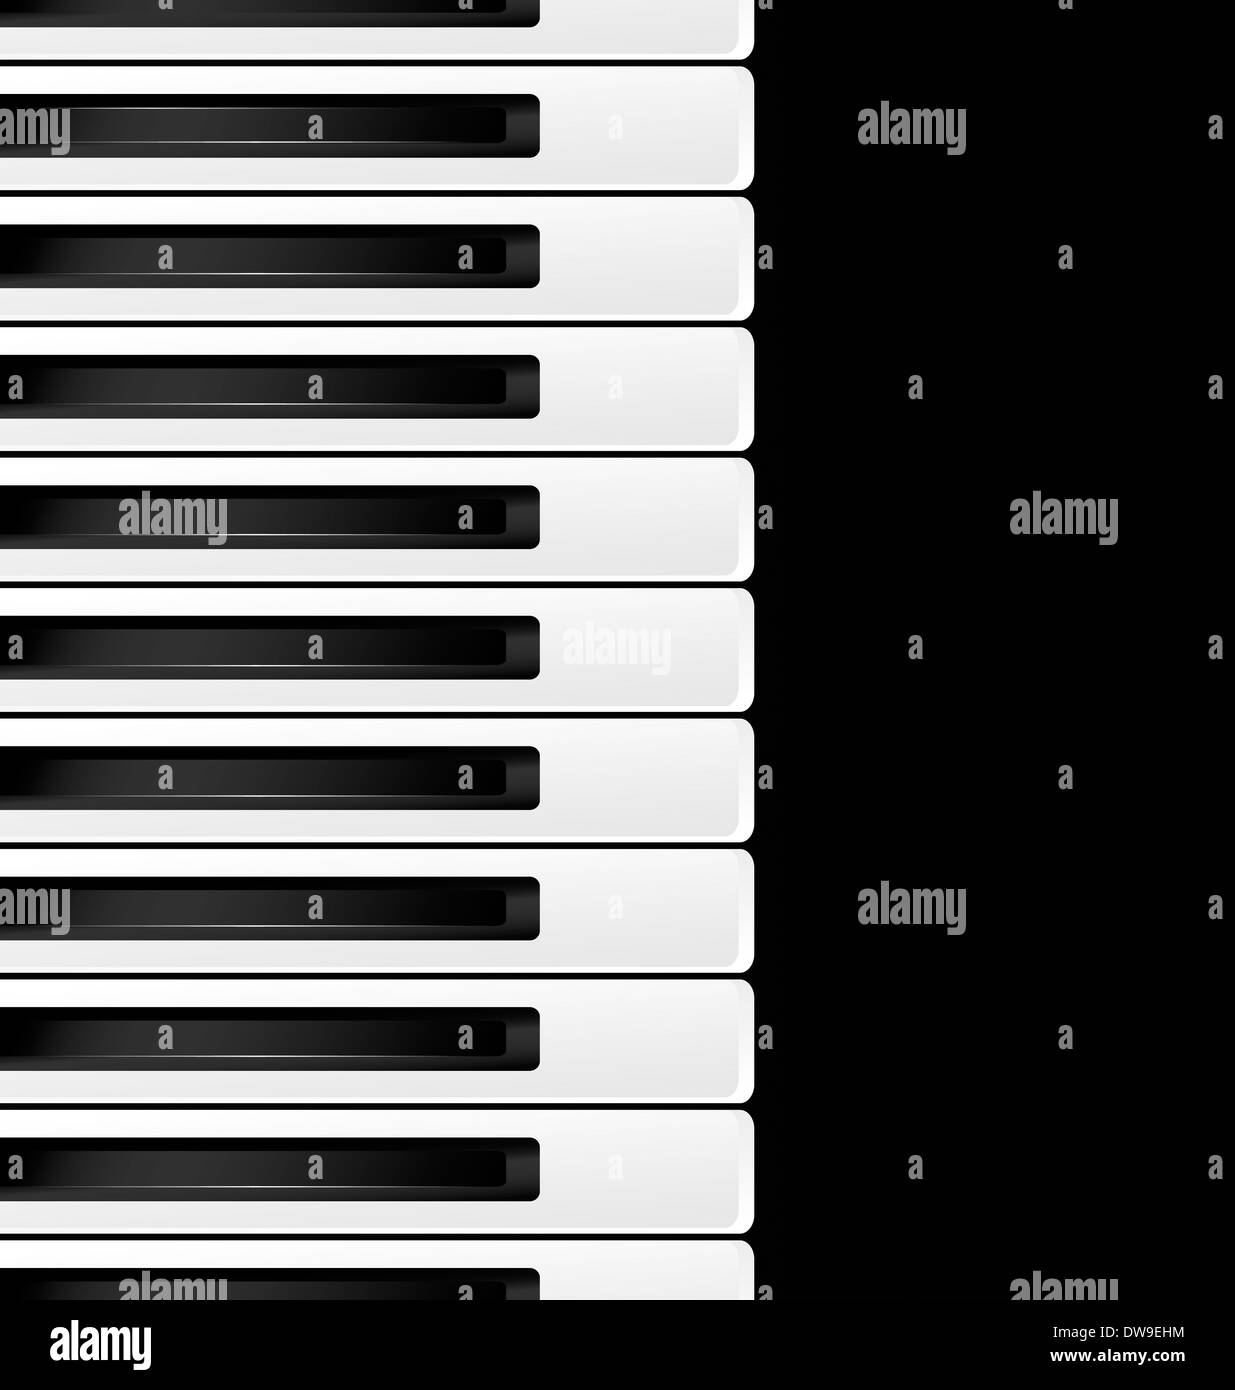 black background and abstract black and white piano keys - Stock Image